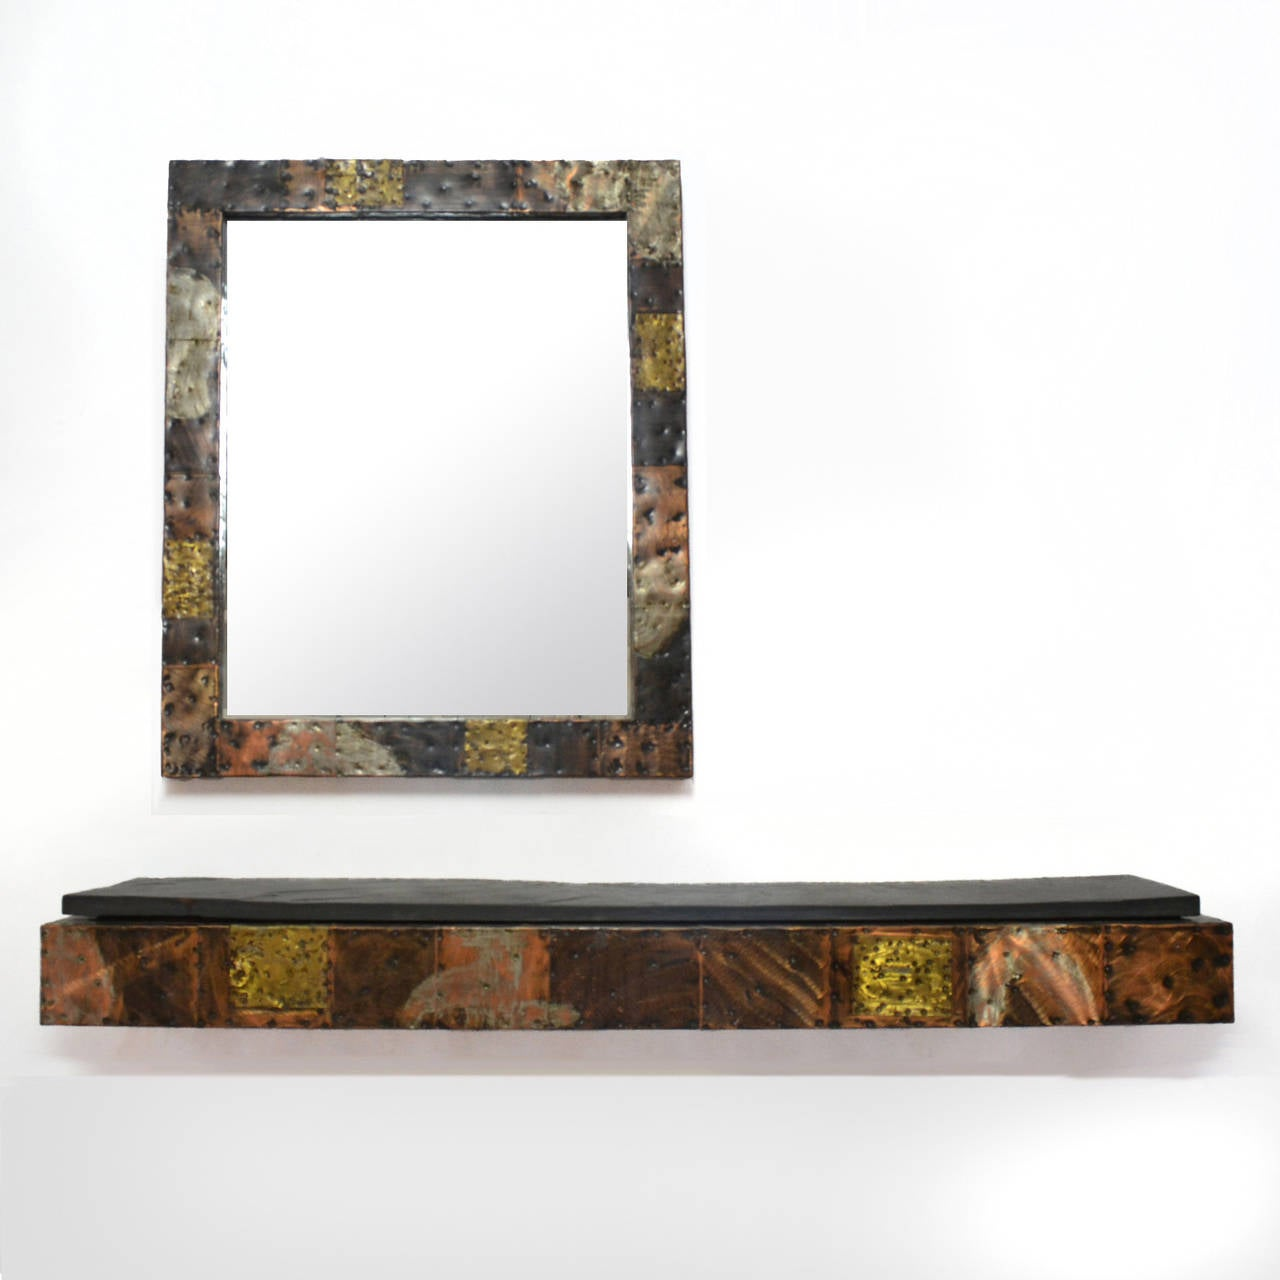 Paul Evans Patchwork Mirror and Wall-Mounted Console 4